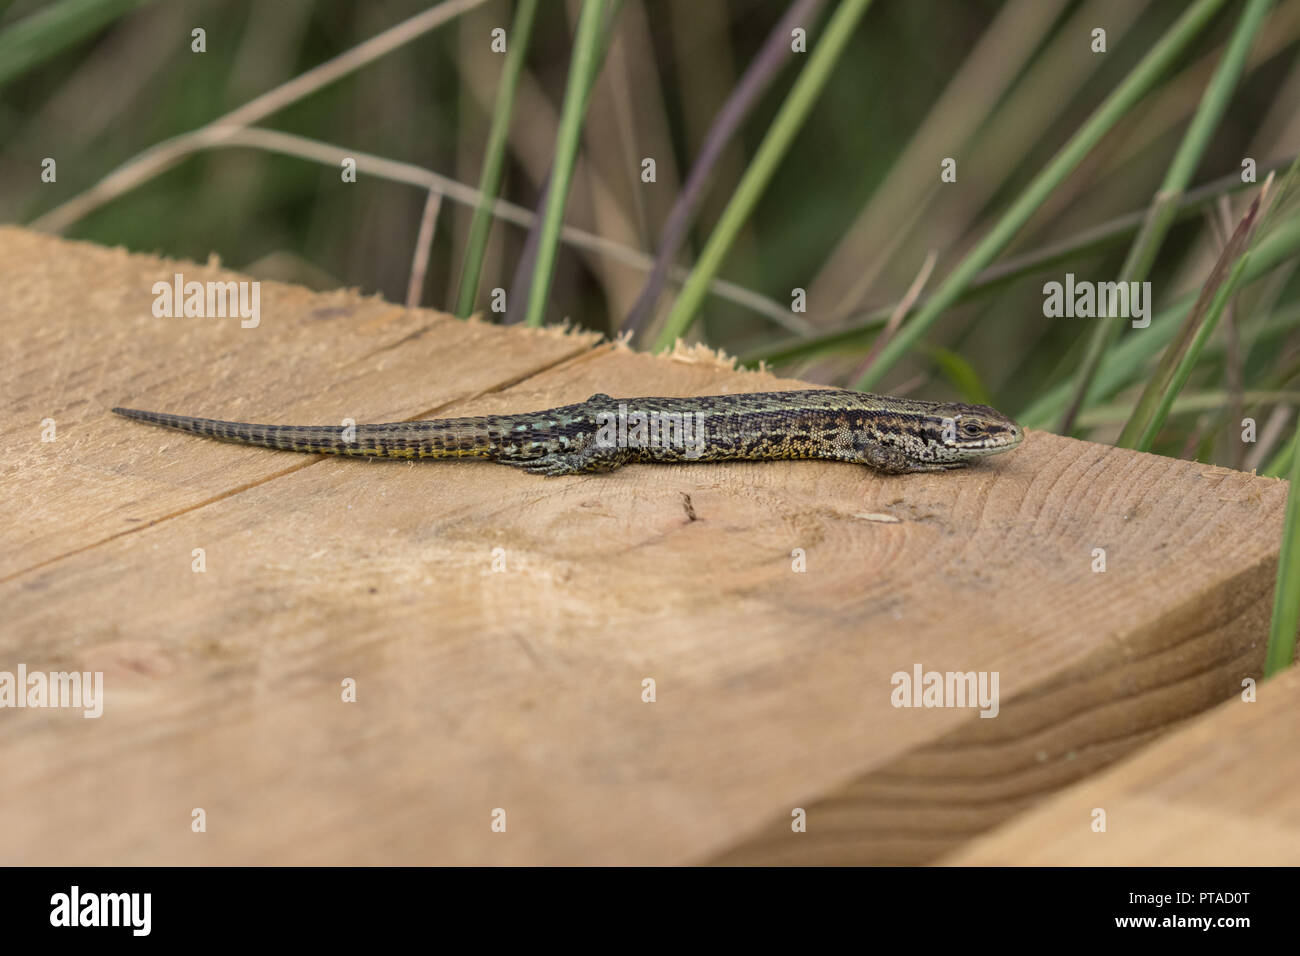 A close up of a common lizard (Lacerta Zootoca vivipara) basking on the boardwalk at Thursley Common National Nature Reserve - Stock Image